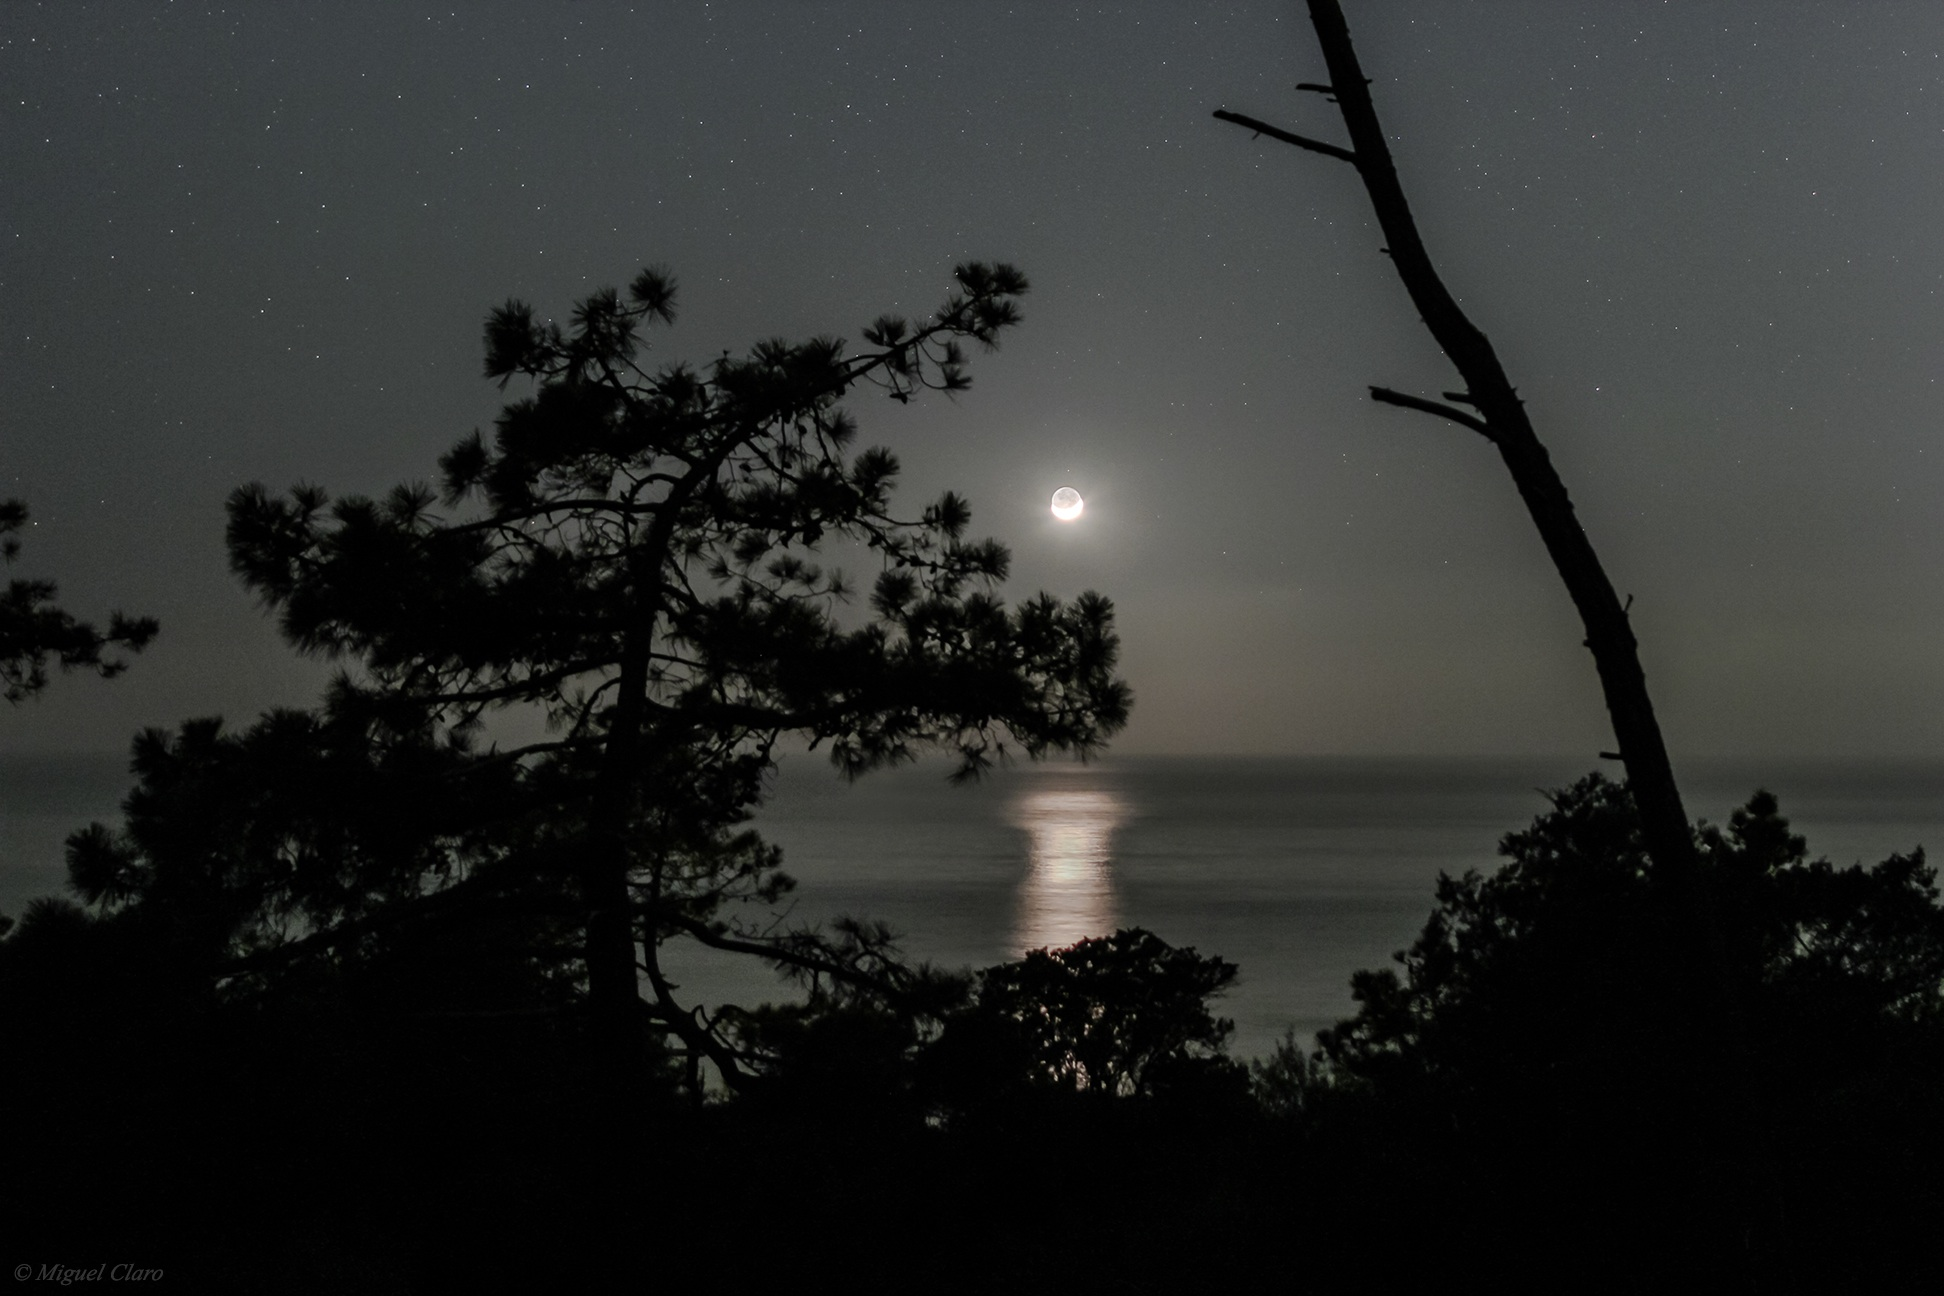 Glowing Moonset Off Portugal Coast Awes Stargazer (Photo, Video)